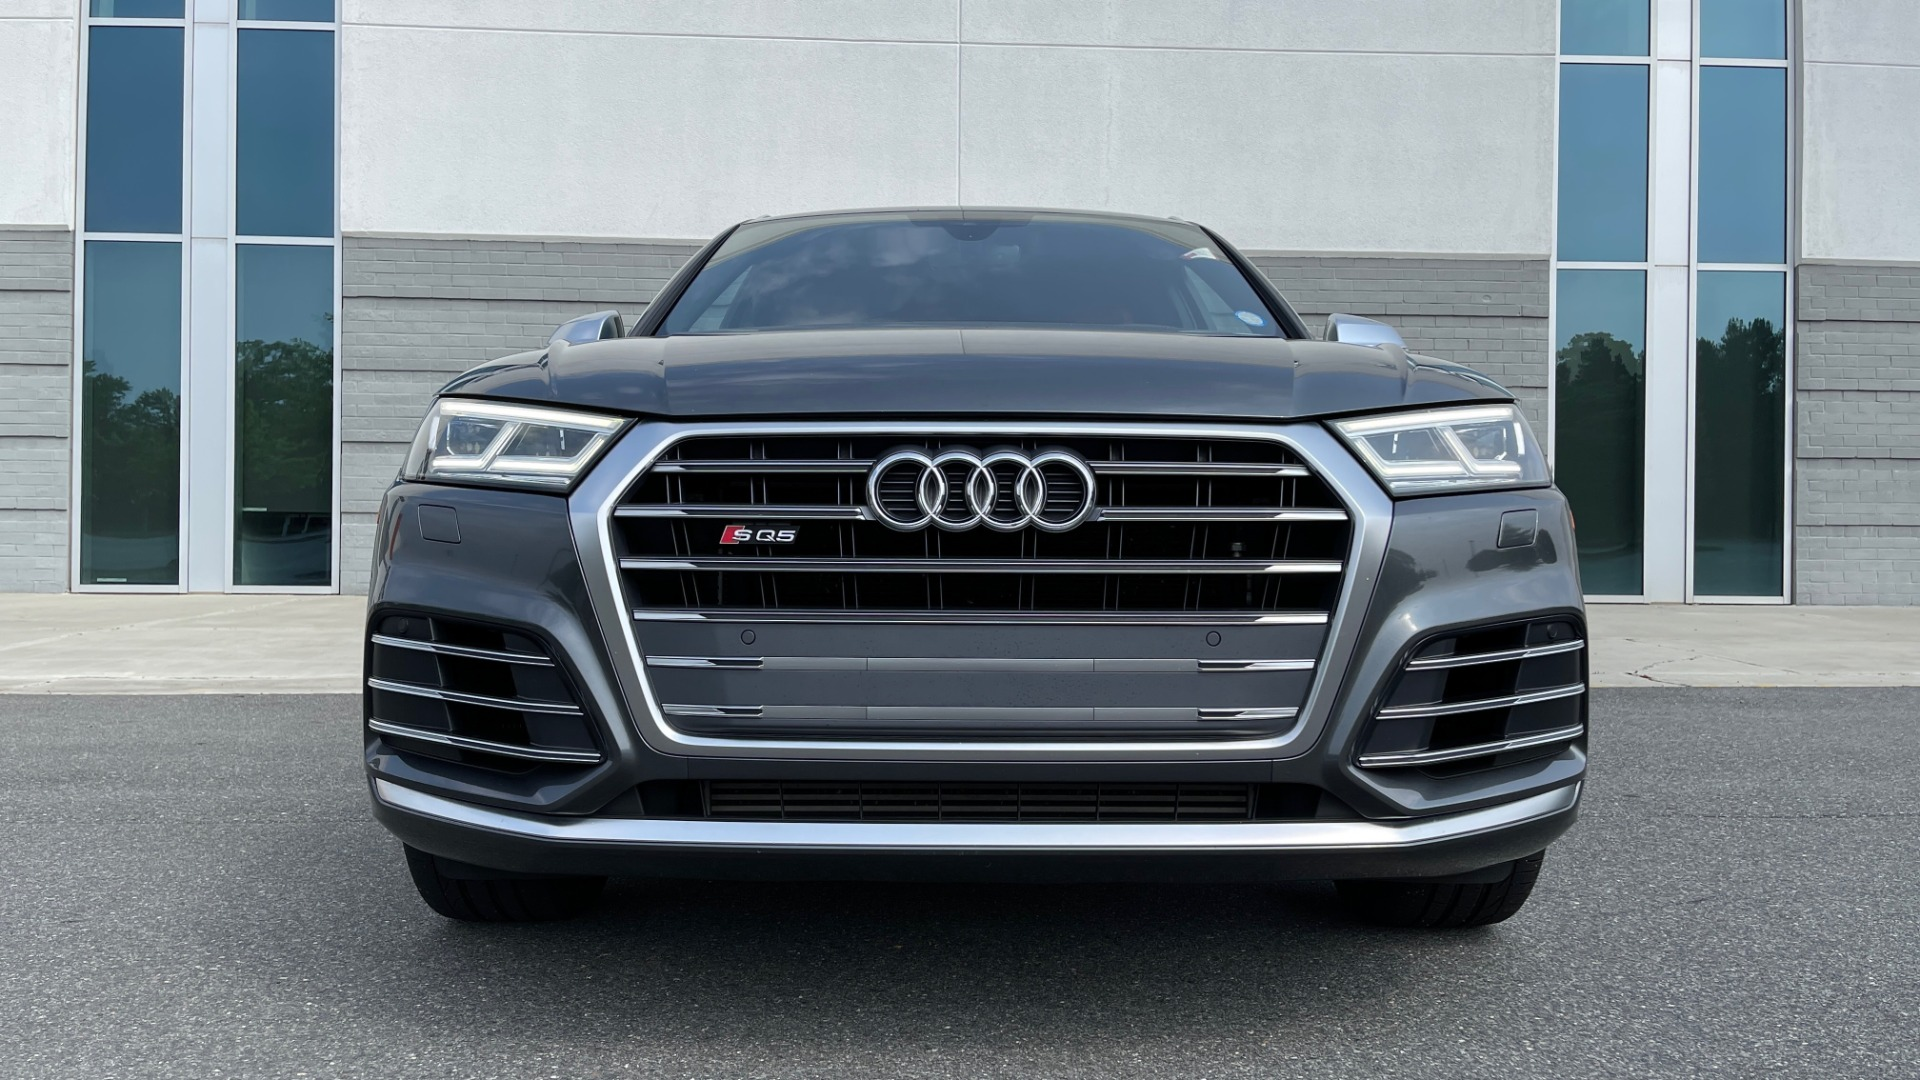 Used 2018 Audi SQ5 PREMIUM PLUS / S-SPORT / NAV / B&O SND / SUNROOF / REARVIEW for sale $43,995 at Formula Imports in Charlotte NC 28227 11